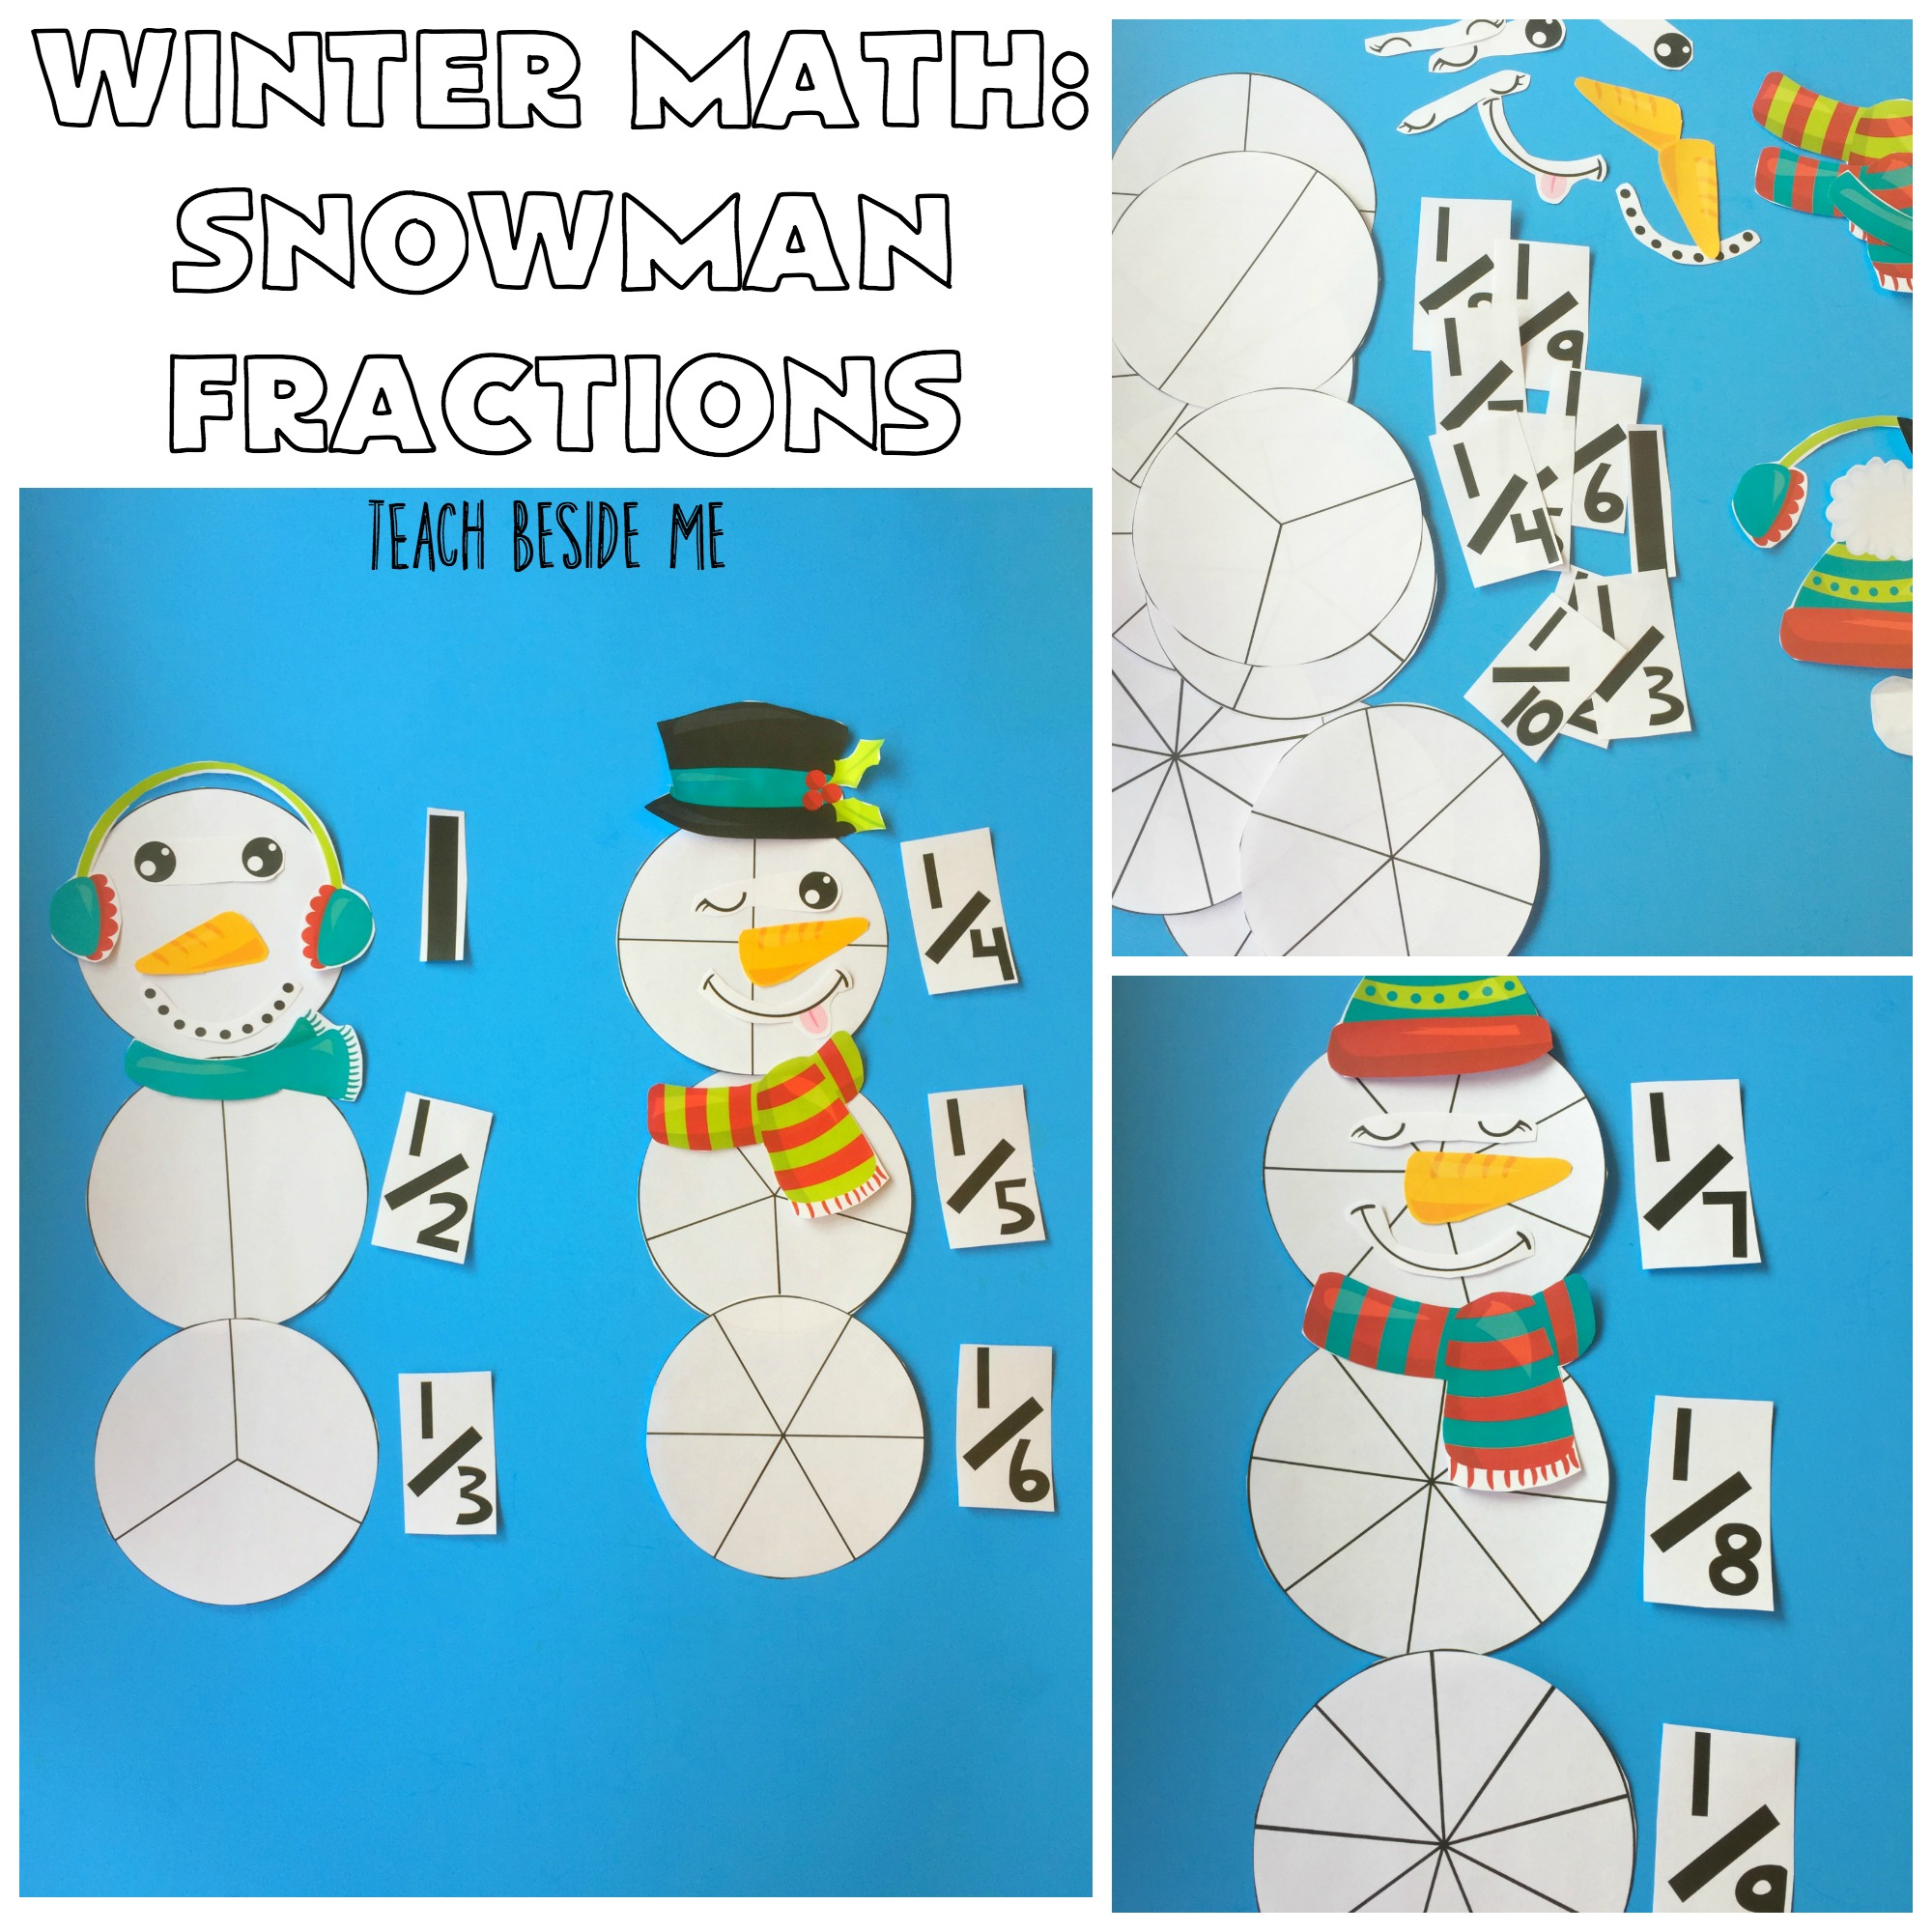 Winter Math Snowman Fractions